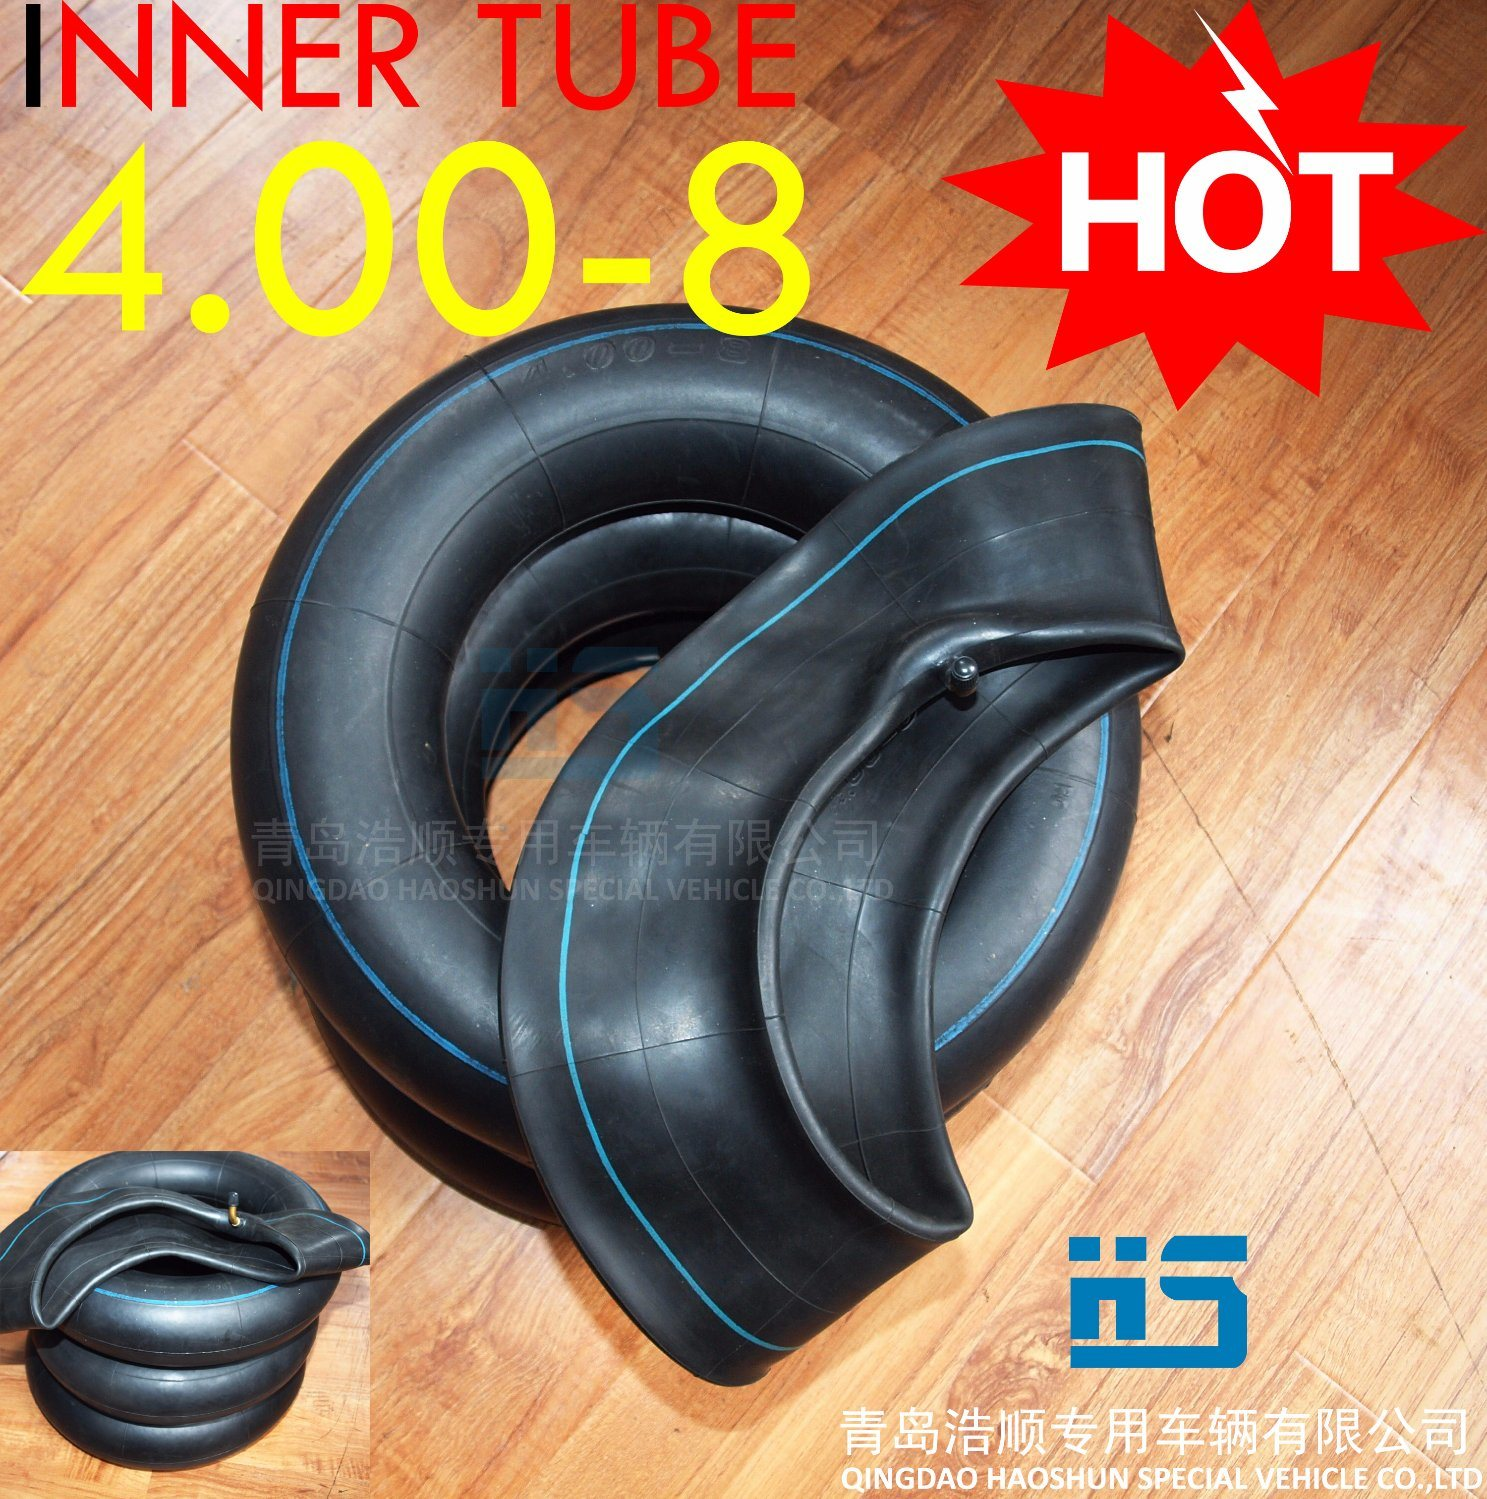 Tricycle Inner Tube 4.00-8 Tire and Keke Tube